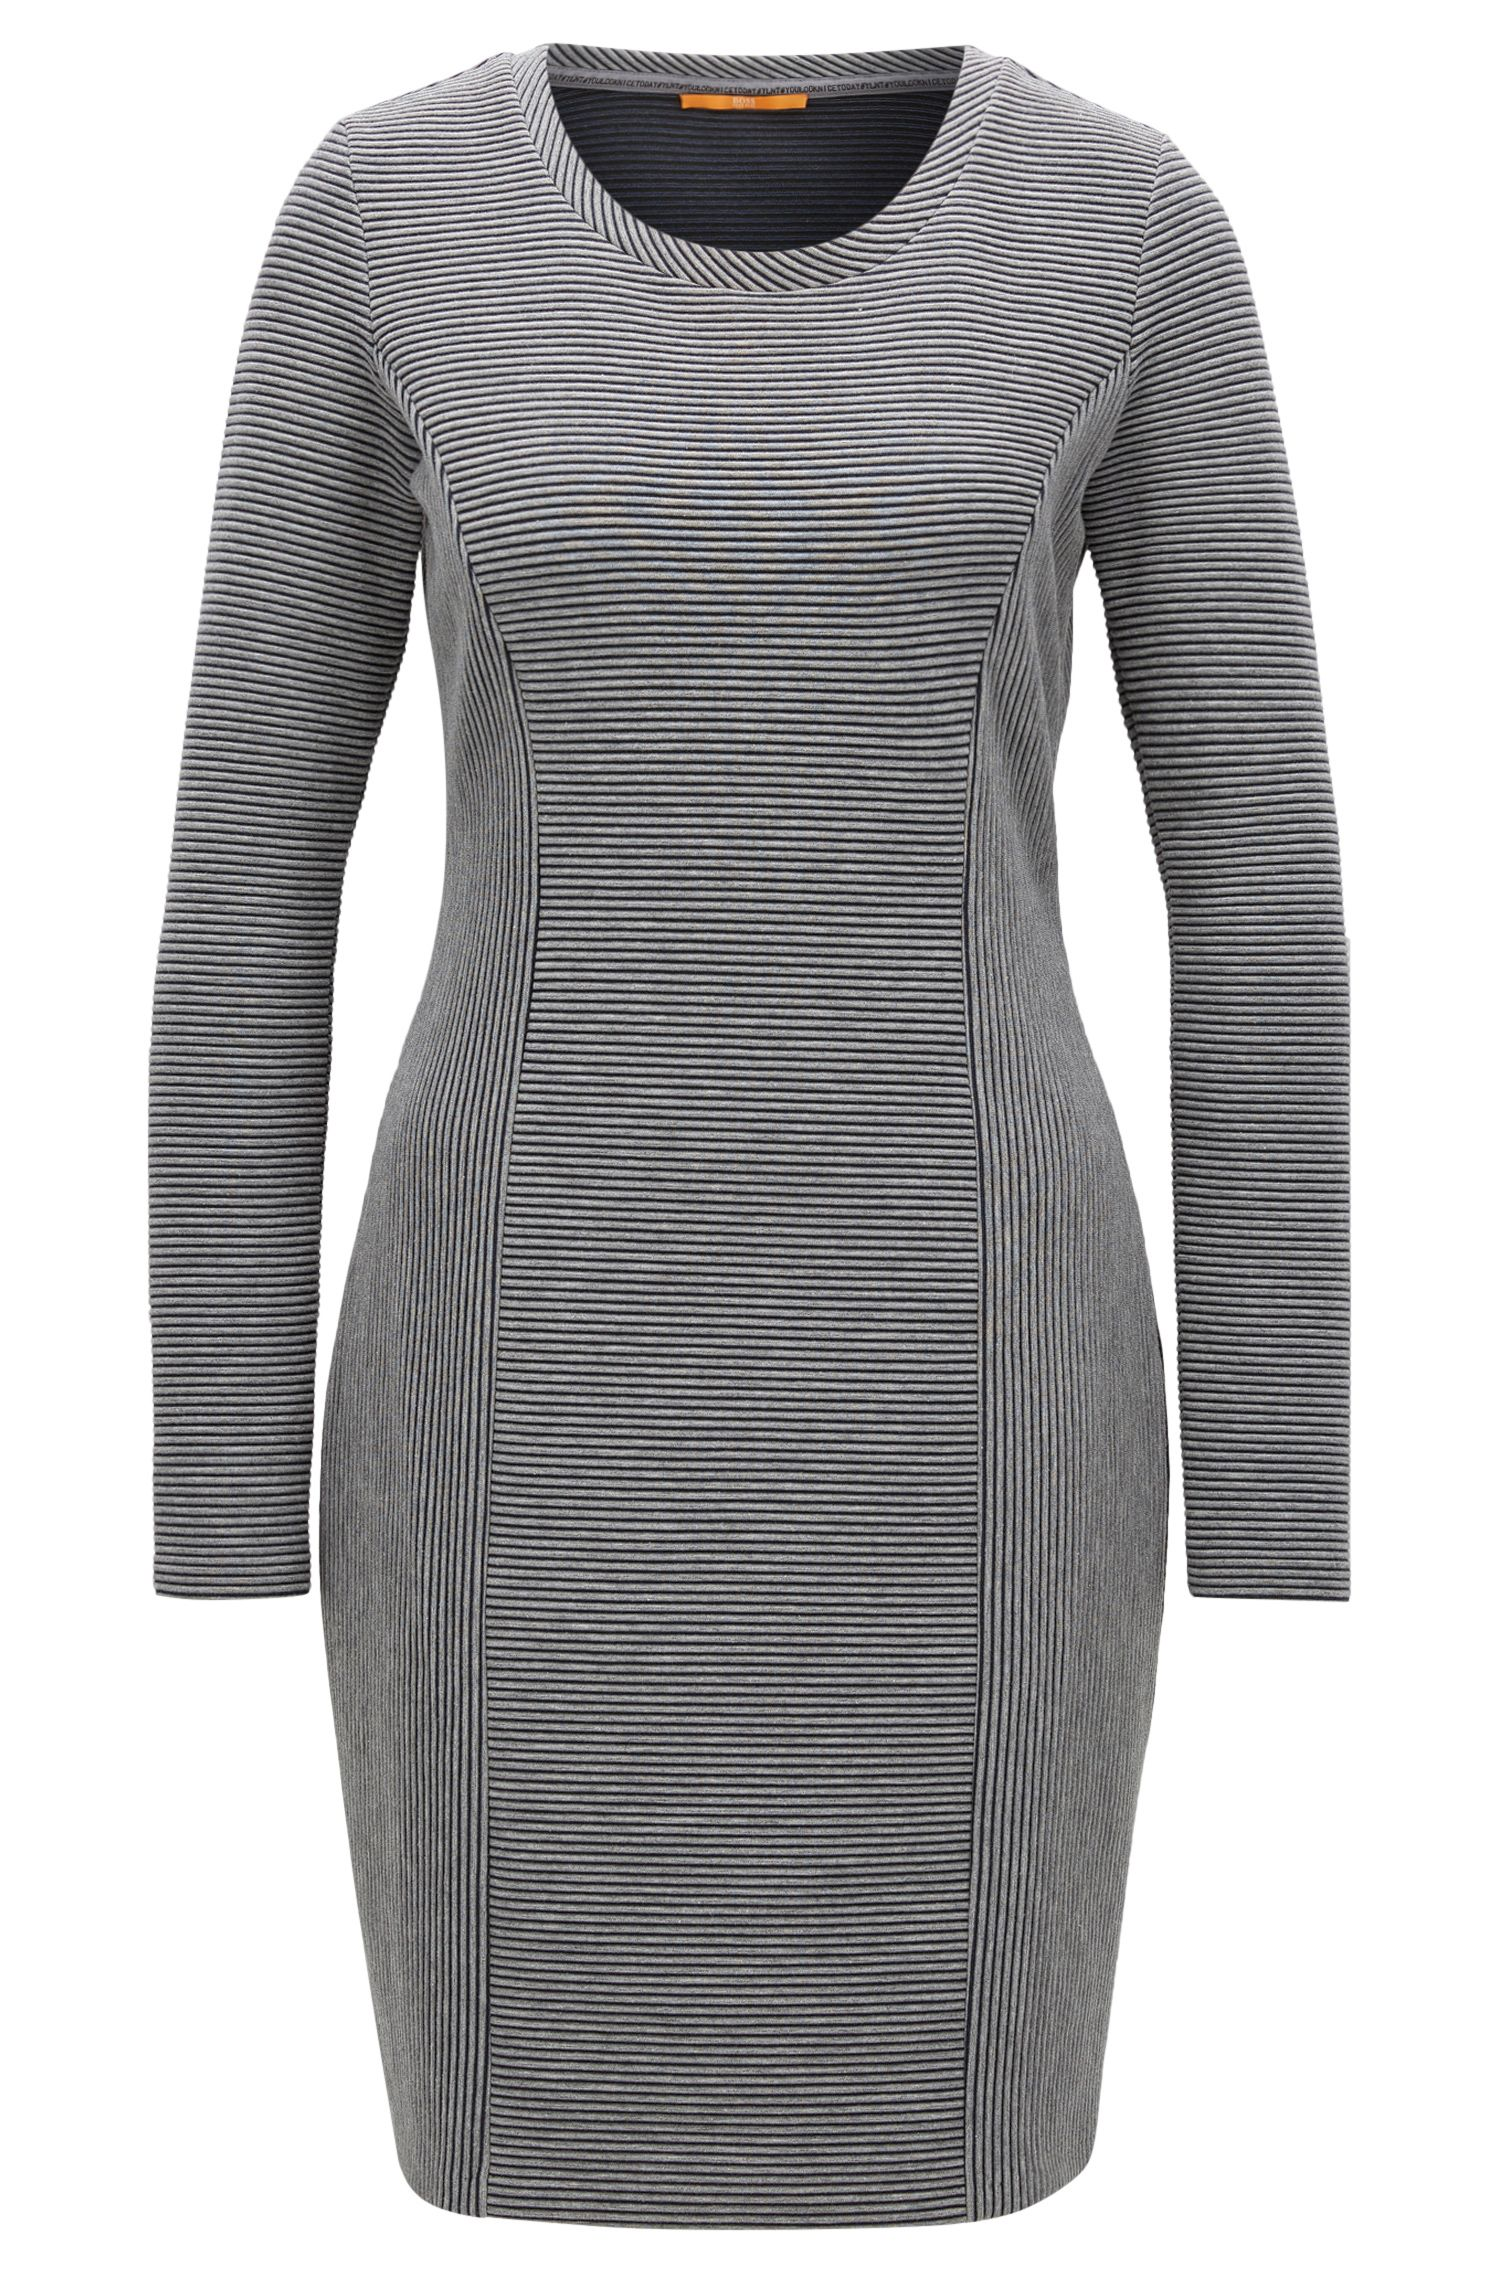 Long-sleeved dress in a cotton blend